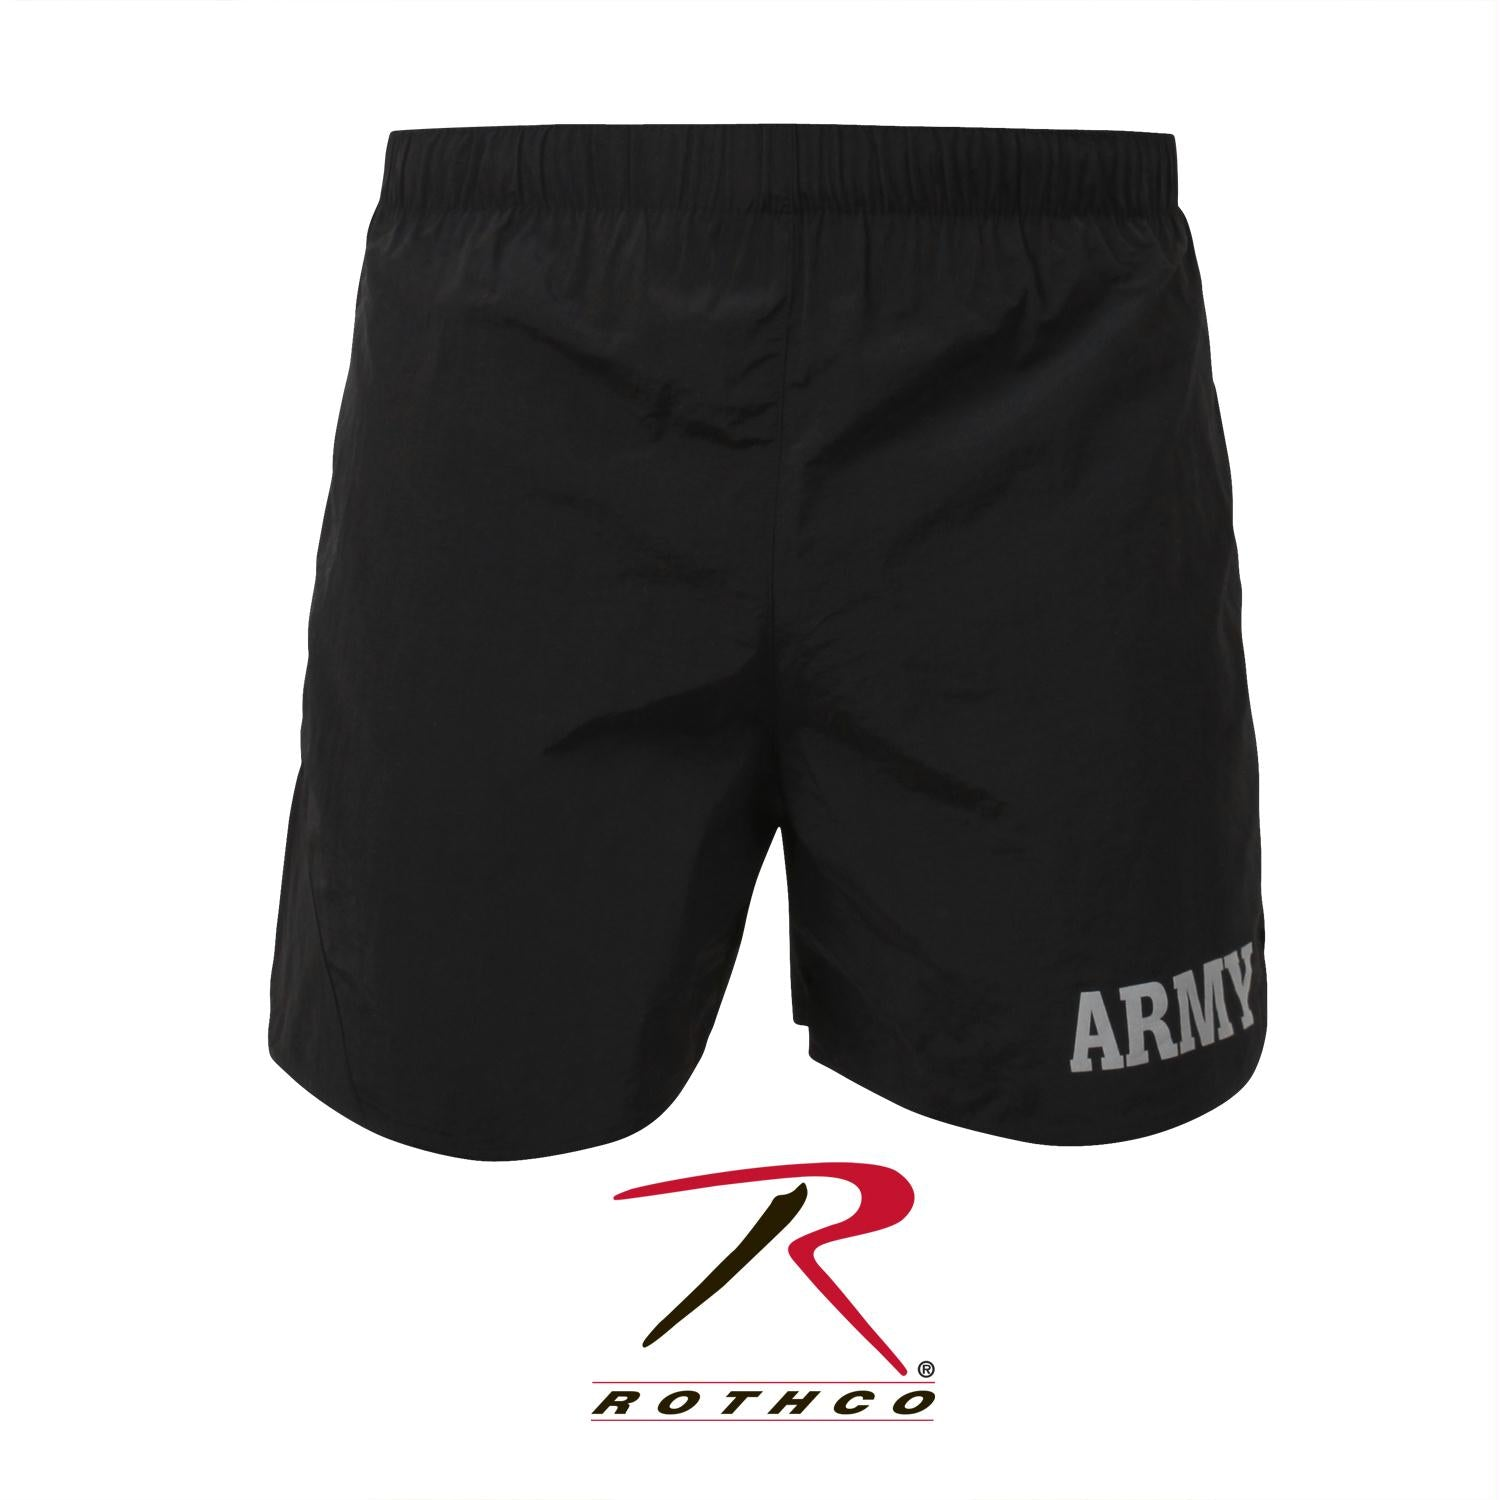 Rothco Physical Training  Shorts - Army / XL